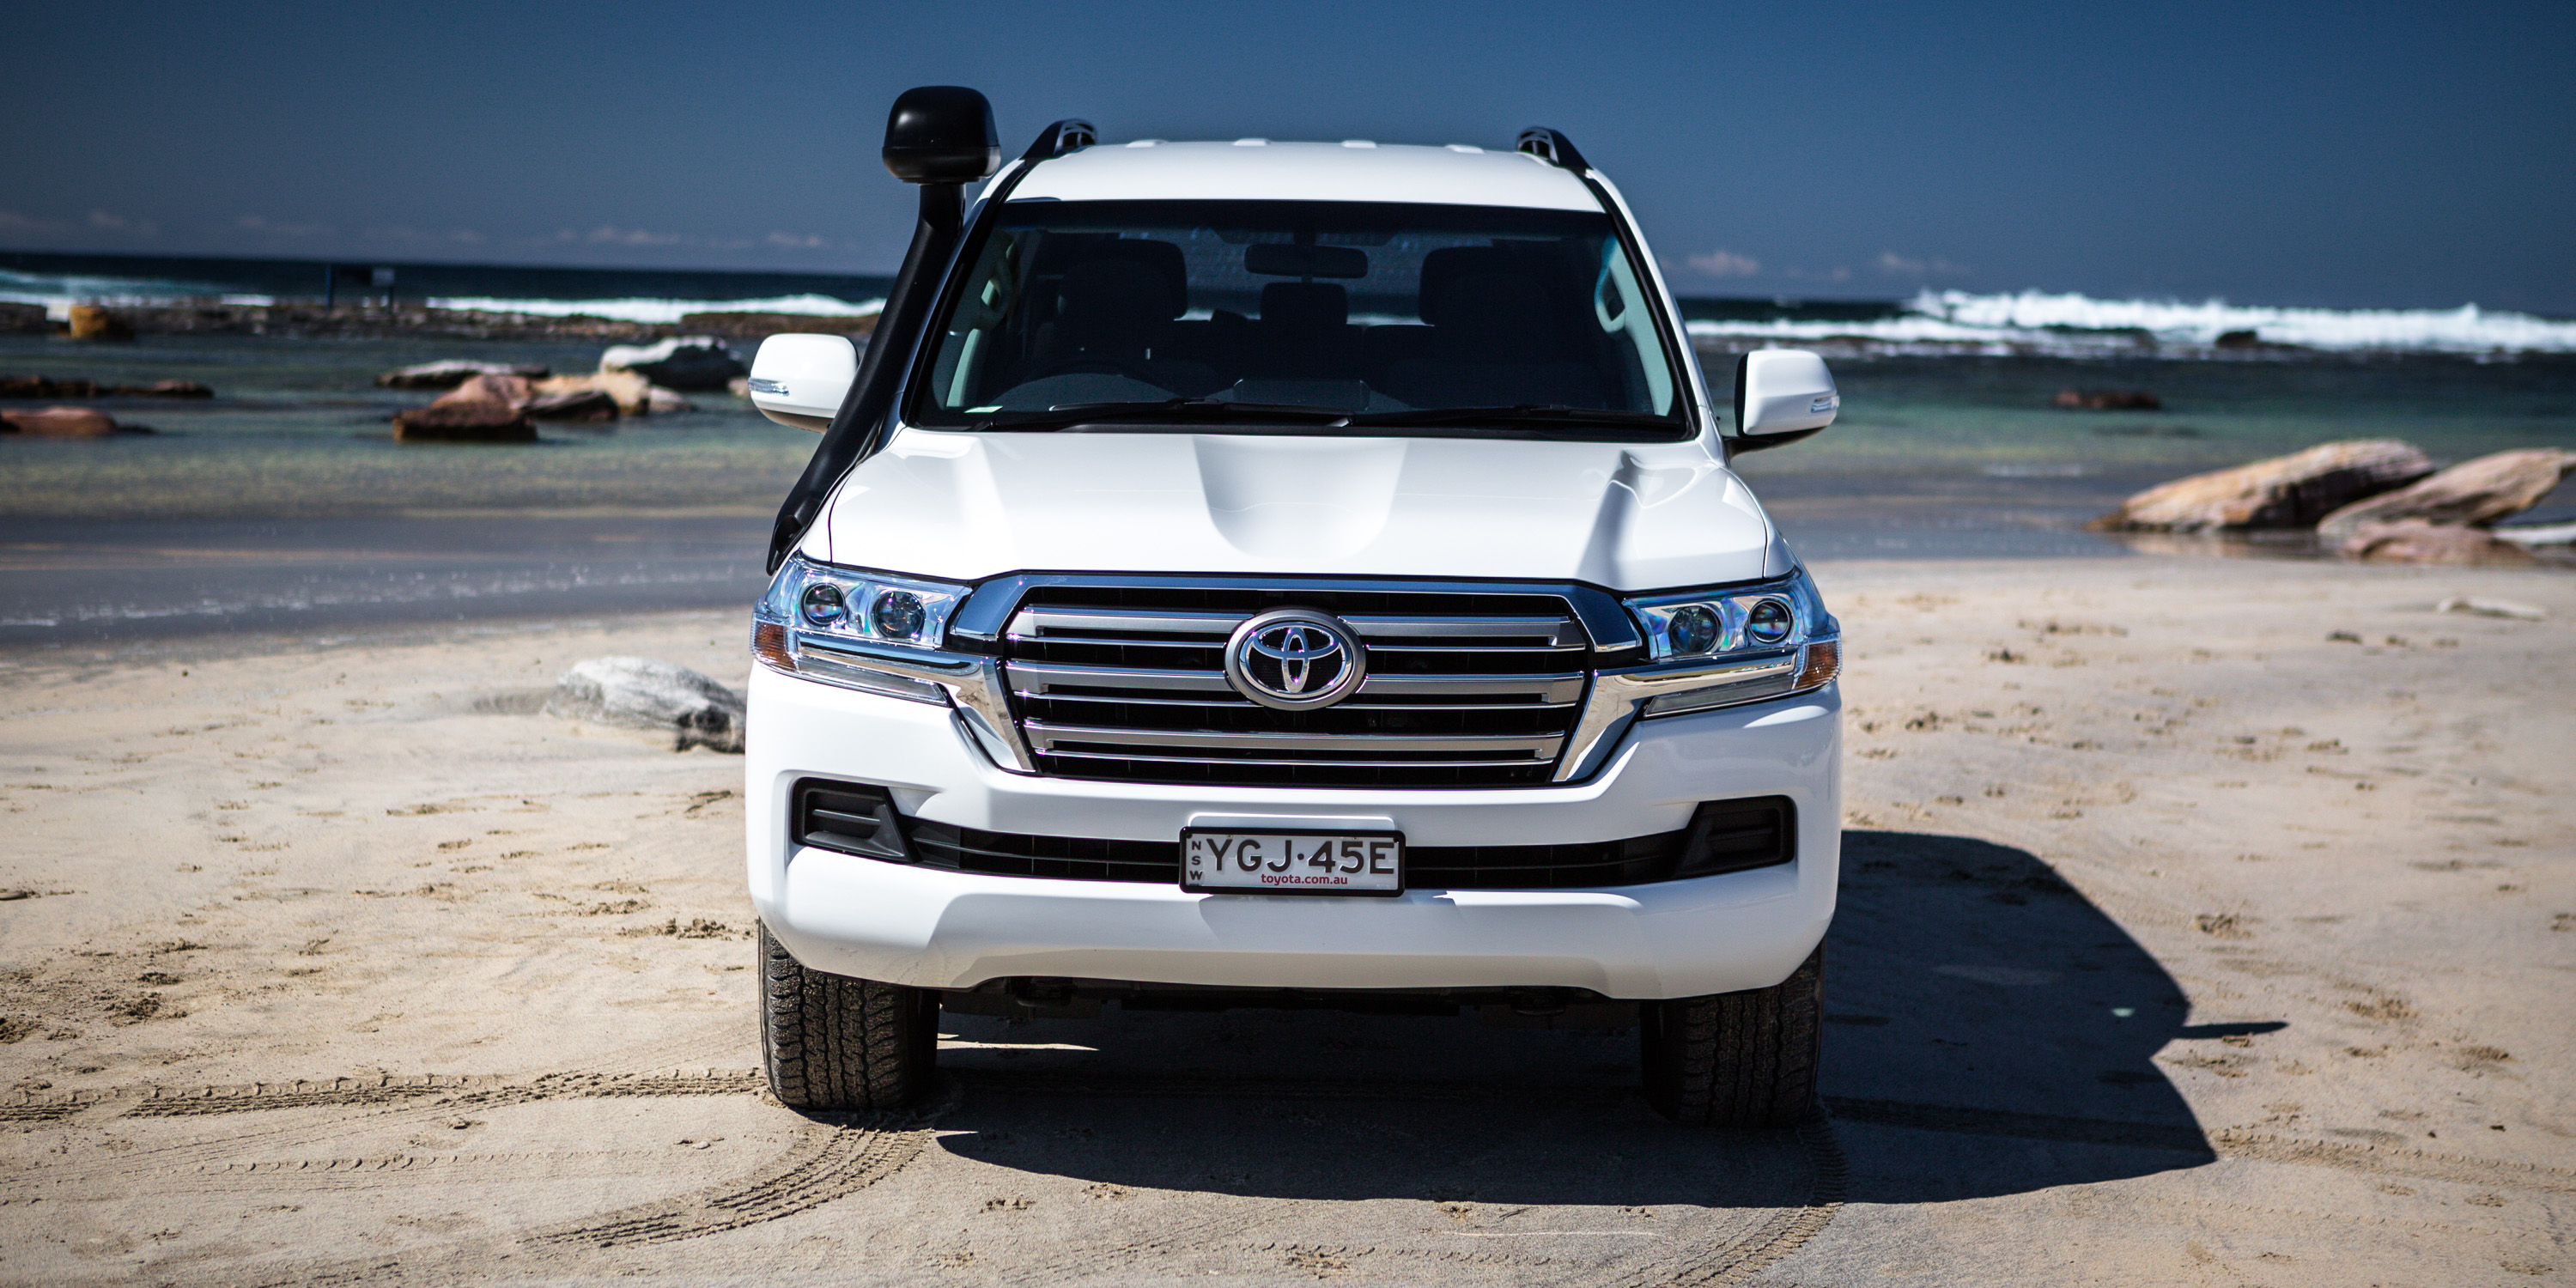 2016 Toyota LandCruiser 200 GXL Diesel review | CarAdvice